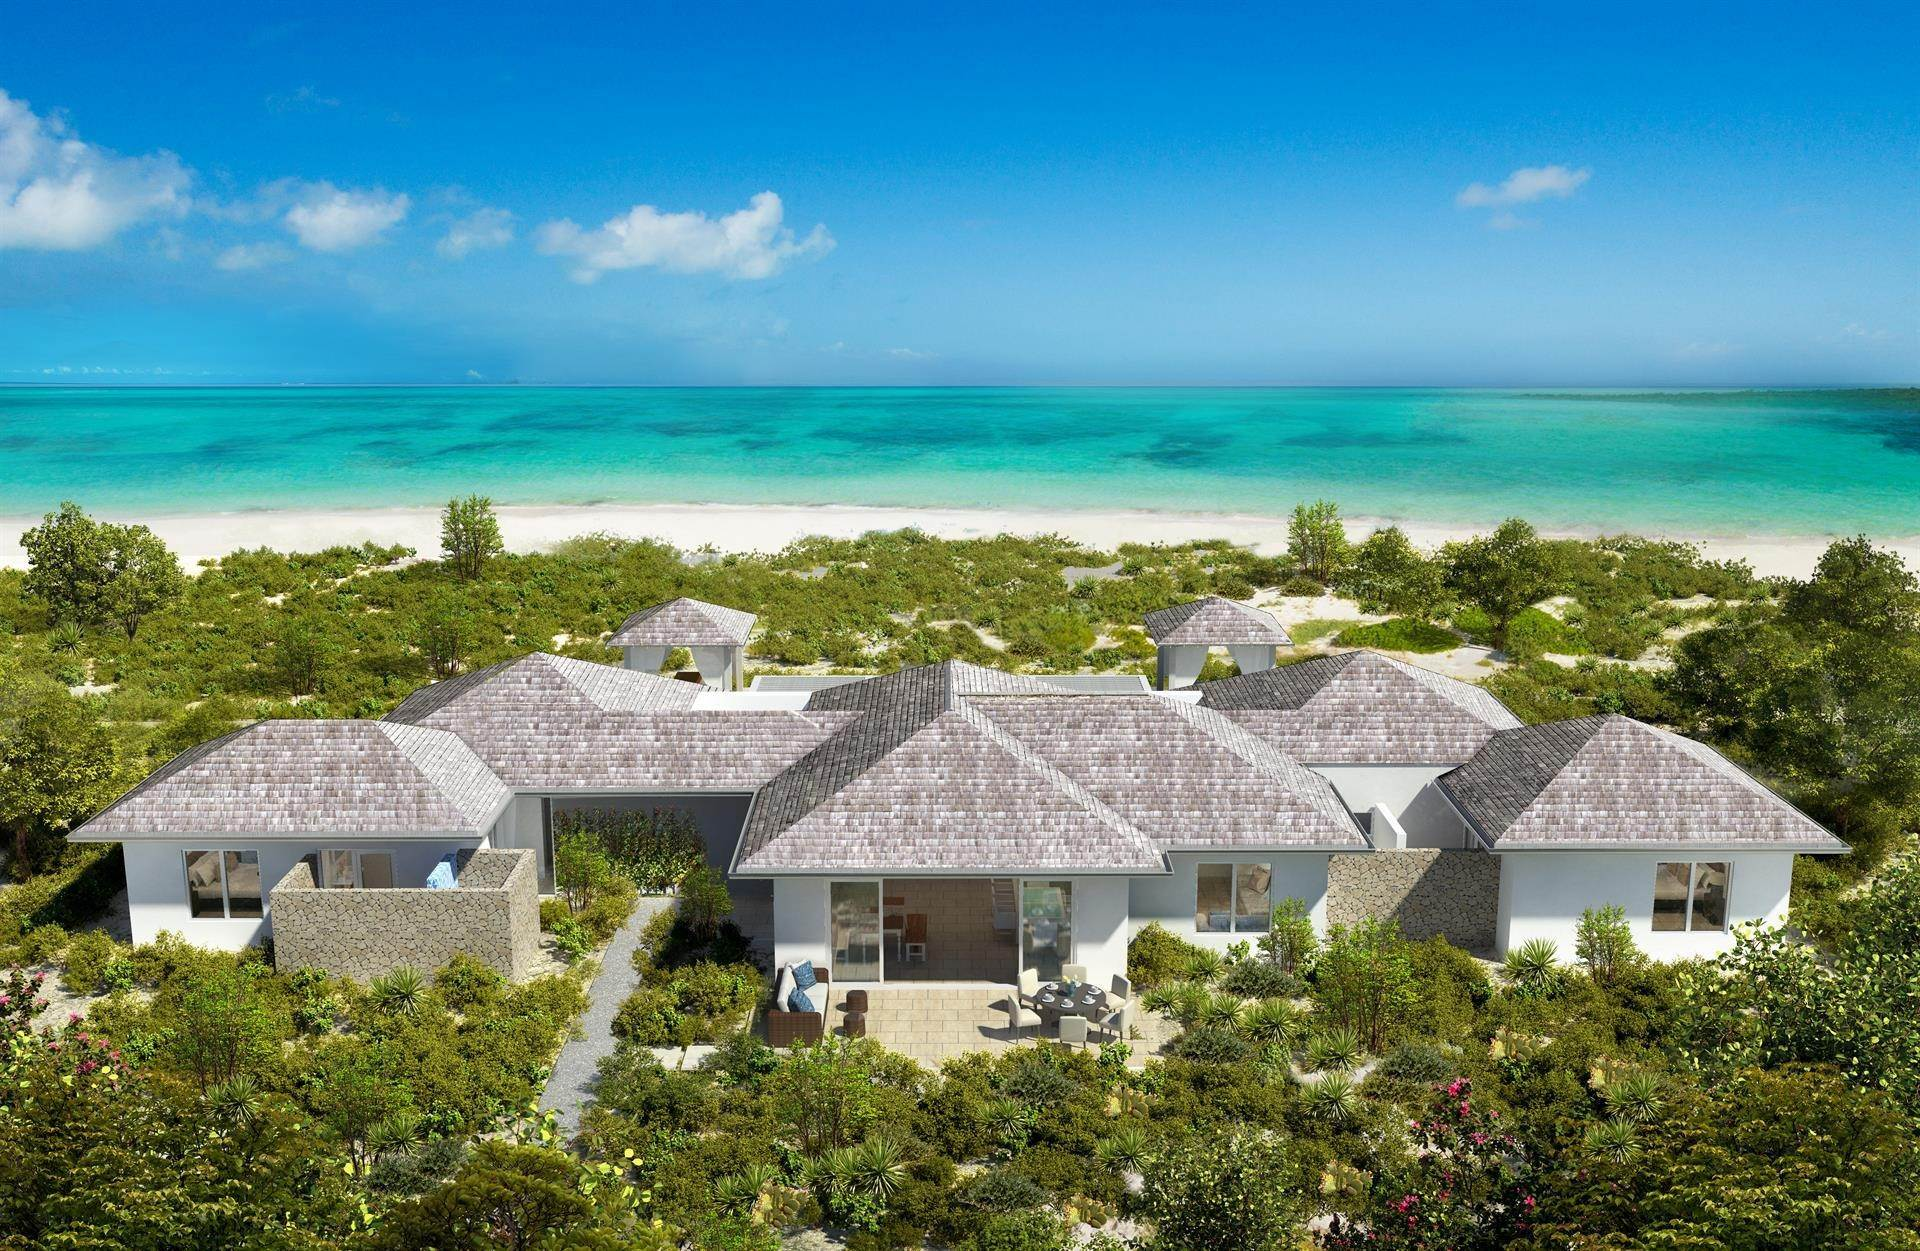 4. Villa/Townhouse for Sale at The Spa Villa at Sailrock The Spa Villa Sailrock, South Caicos,BWI Turks And Caicos Islands